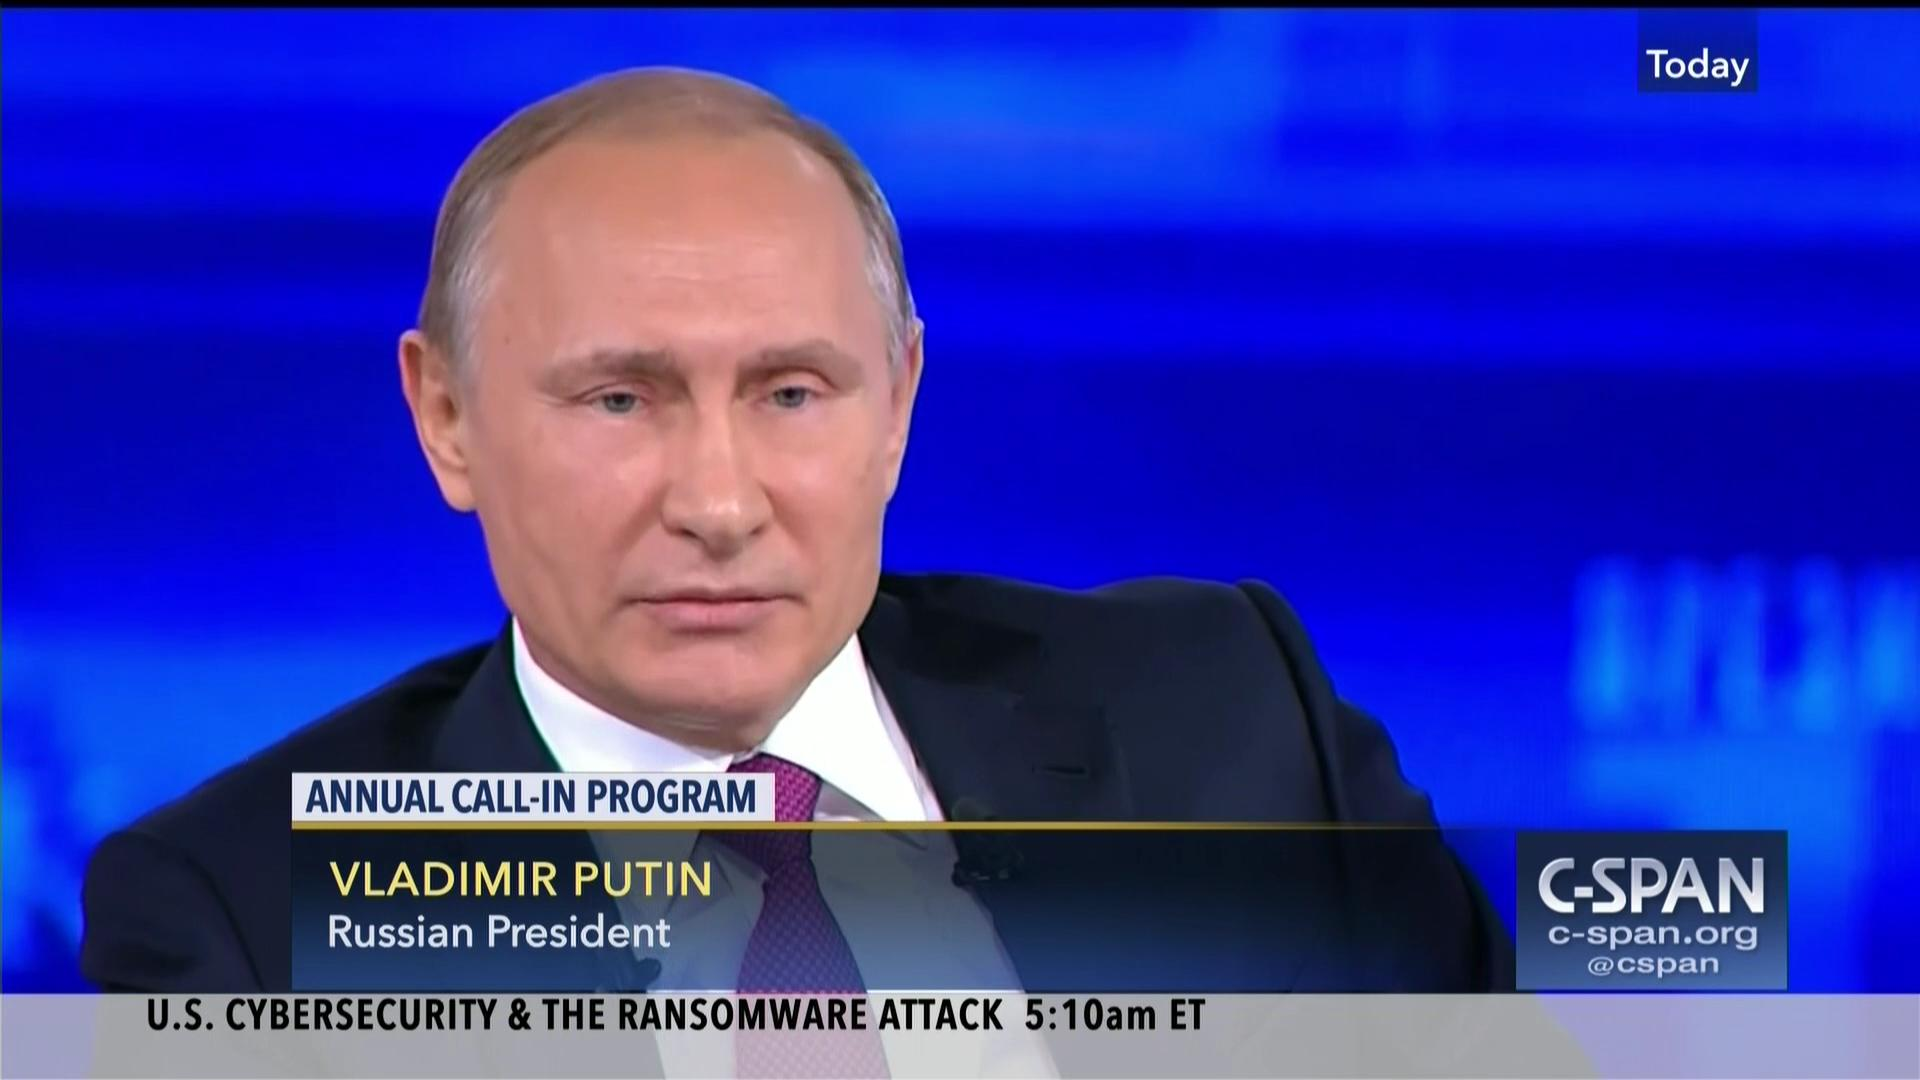 Russian President Putin S Annual Call In Program C Span Org